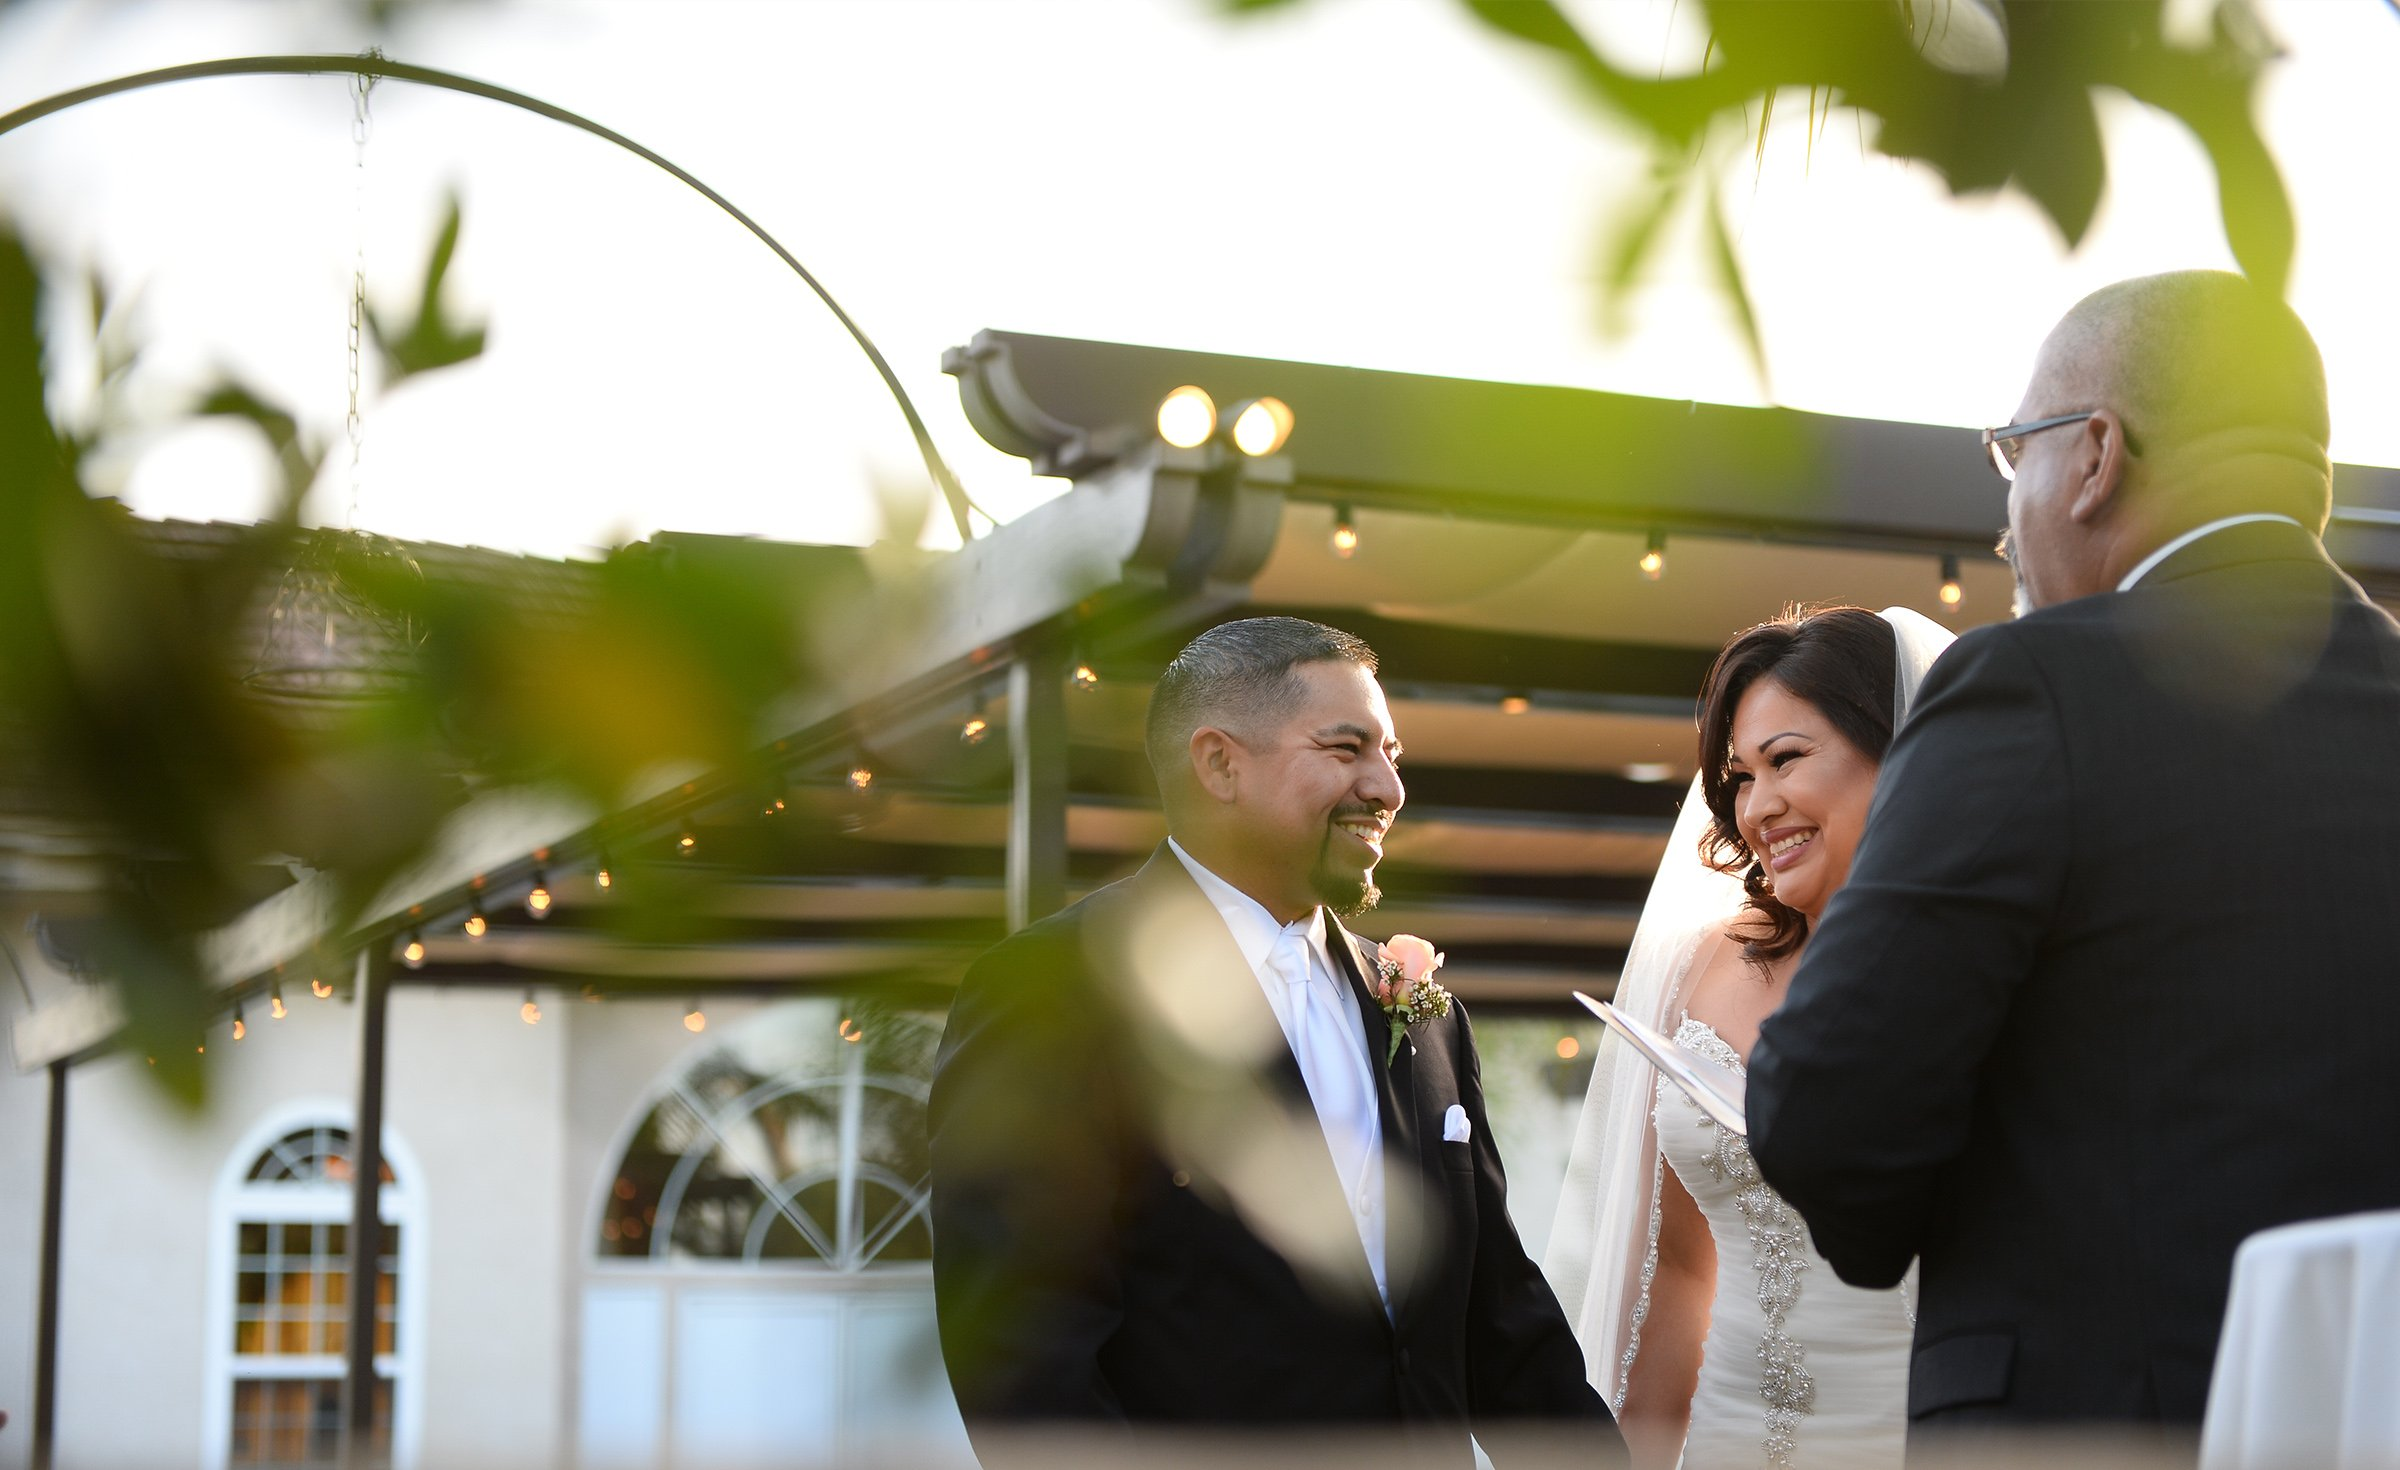 Romantic lighting during a golden hour wedding ceremony - Fresno - Fresno, California - Frenso County - Wedgewood Weddngs